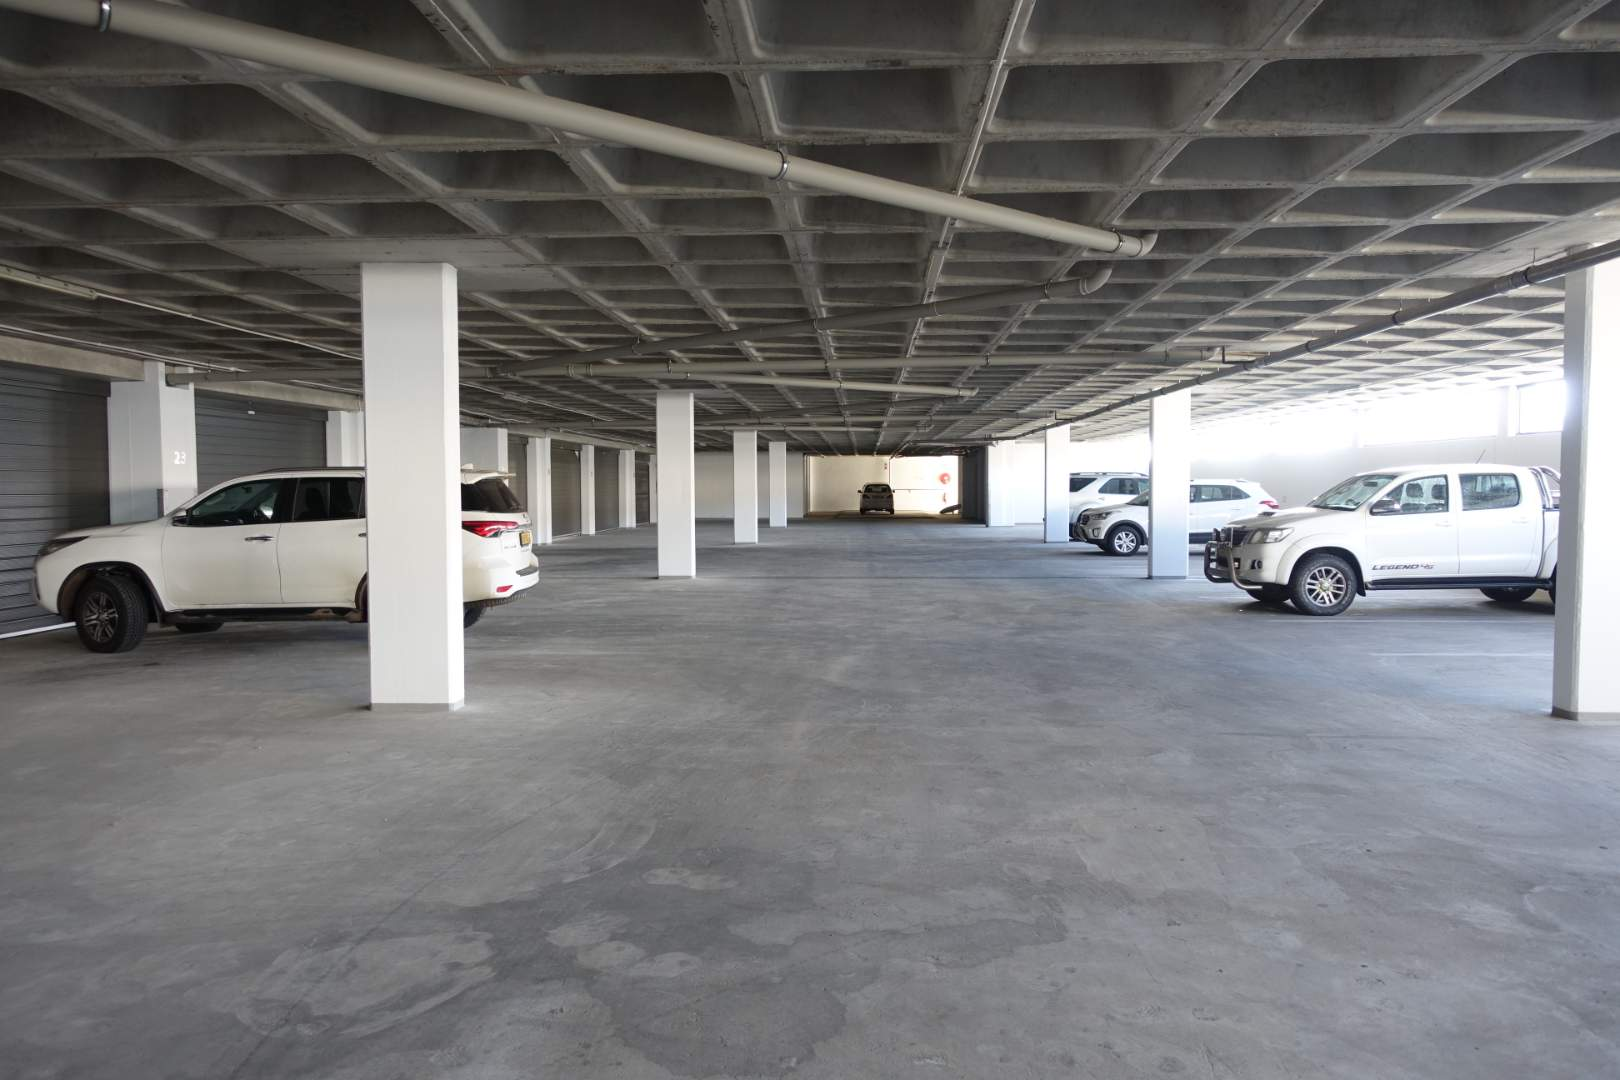 Parking bays, garages and store rooms on first floor